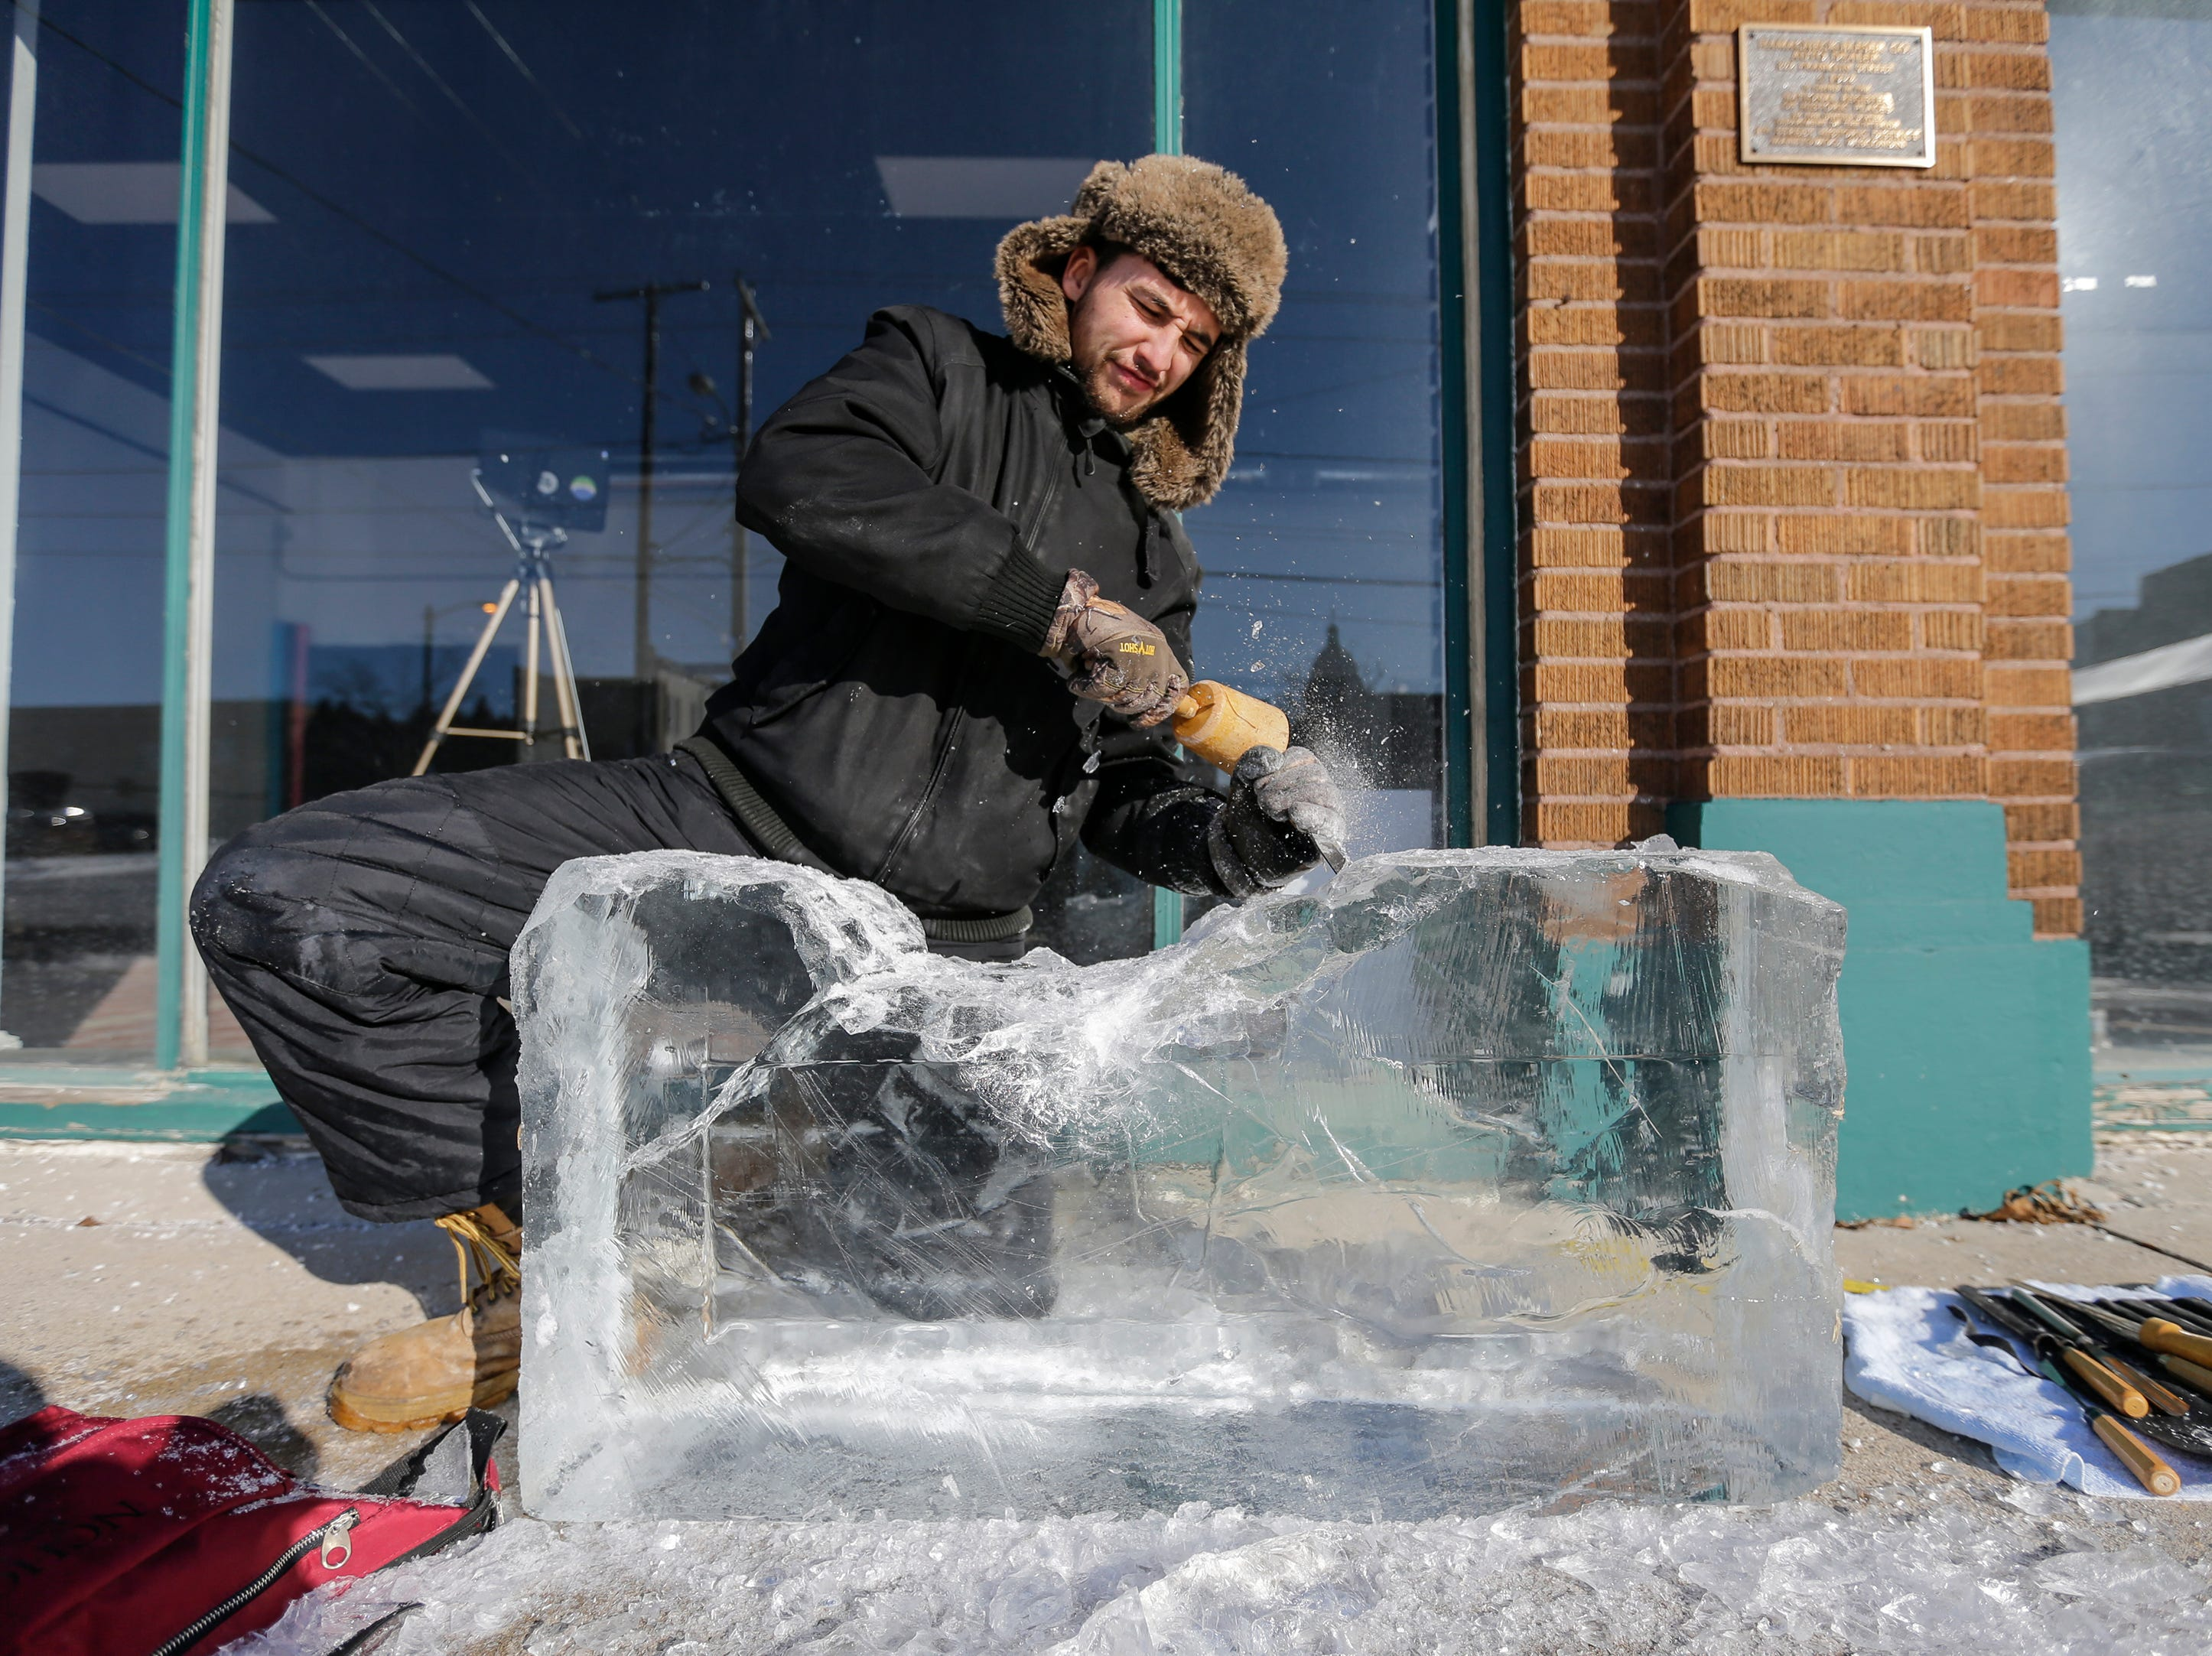 A.J. Jaeger works on an ice sculpture during Winter Fest Saturday, February 9, 2019, in Manitowoc, Wis. Joshua Clark/USA TODAY NETWORK-Wisconsin